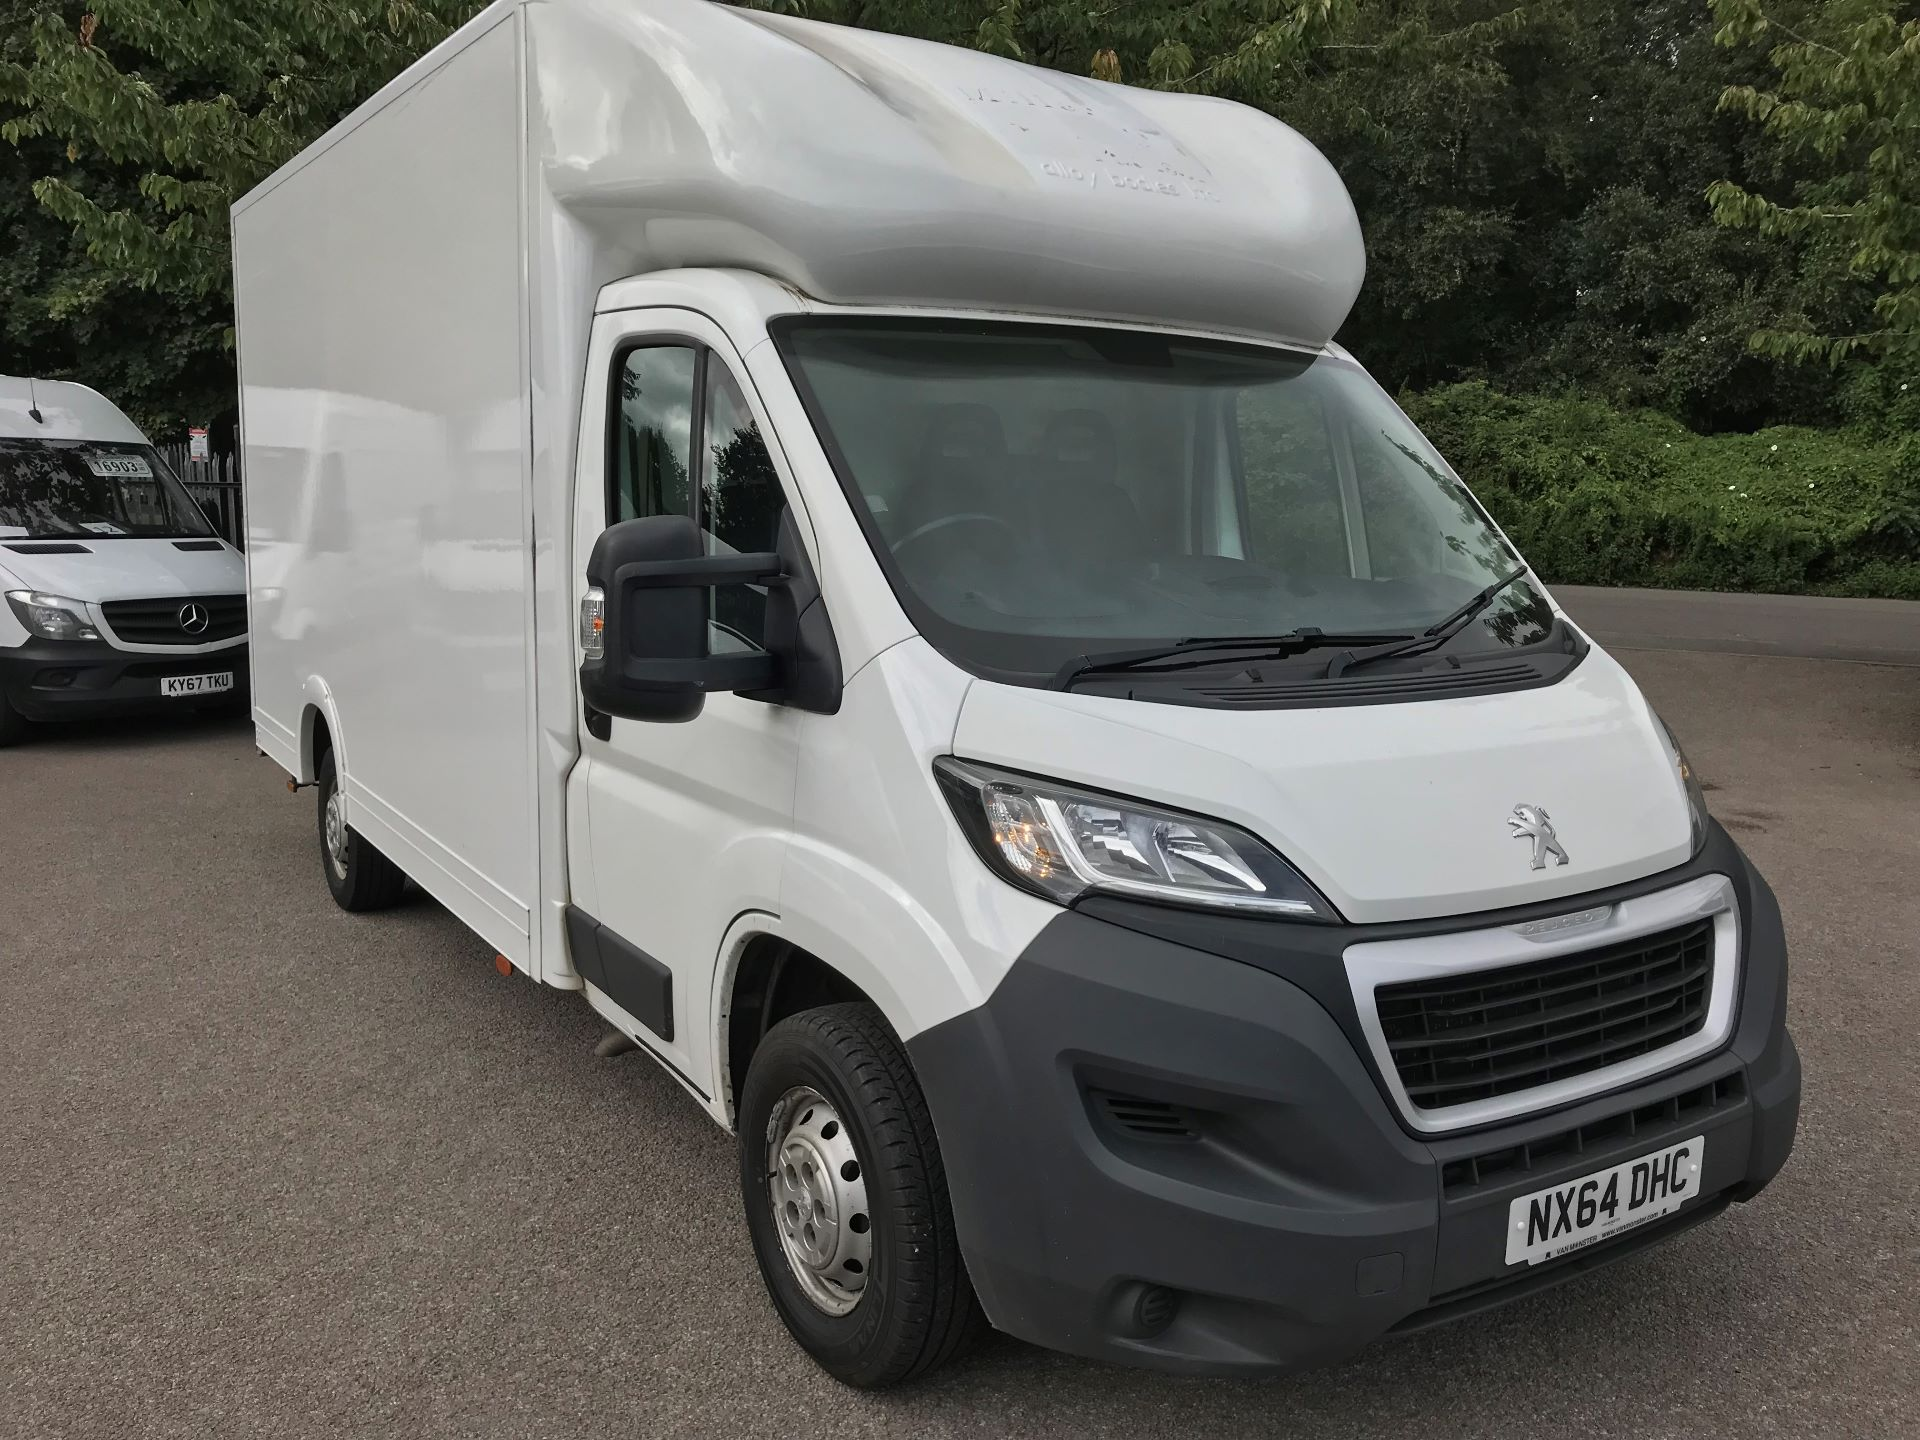 2014 Peugeot Boxer 2.2 Hdi Floor Cab 130Ps euro 5 (NX64DHC)